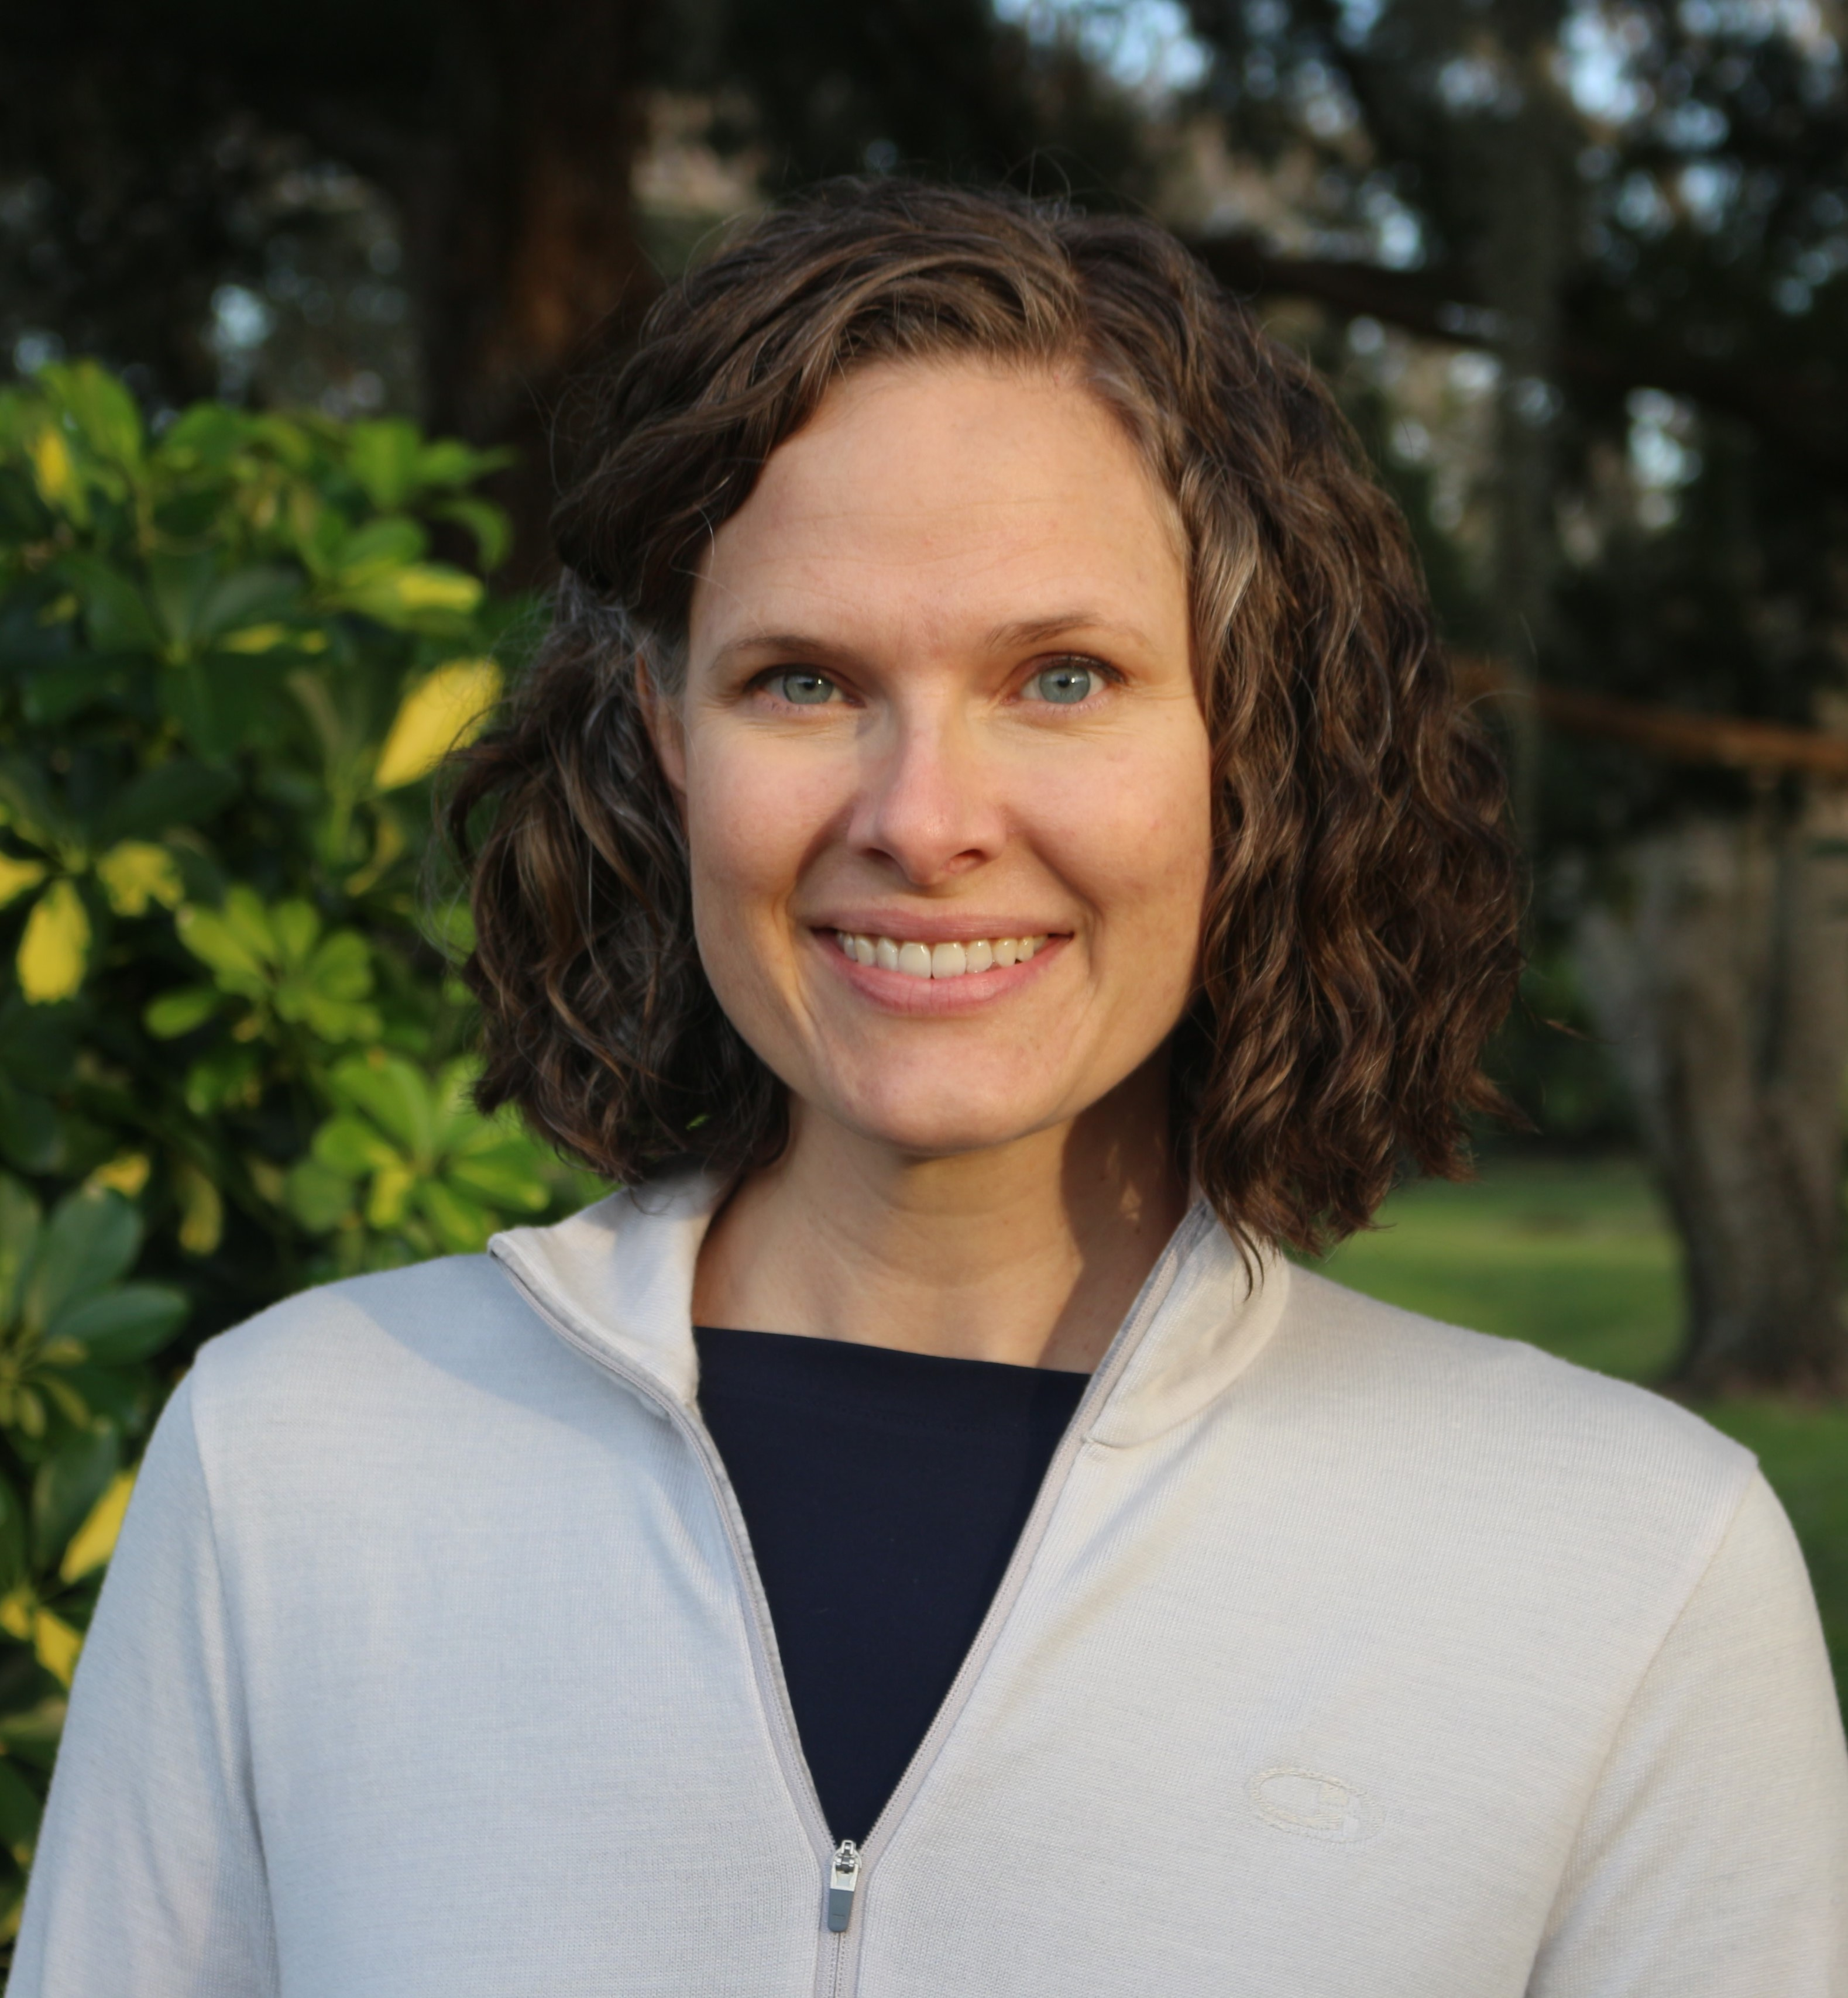 Dr. Heather Gilchrist, Sea Change Physical Therapy